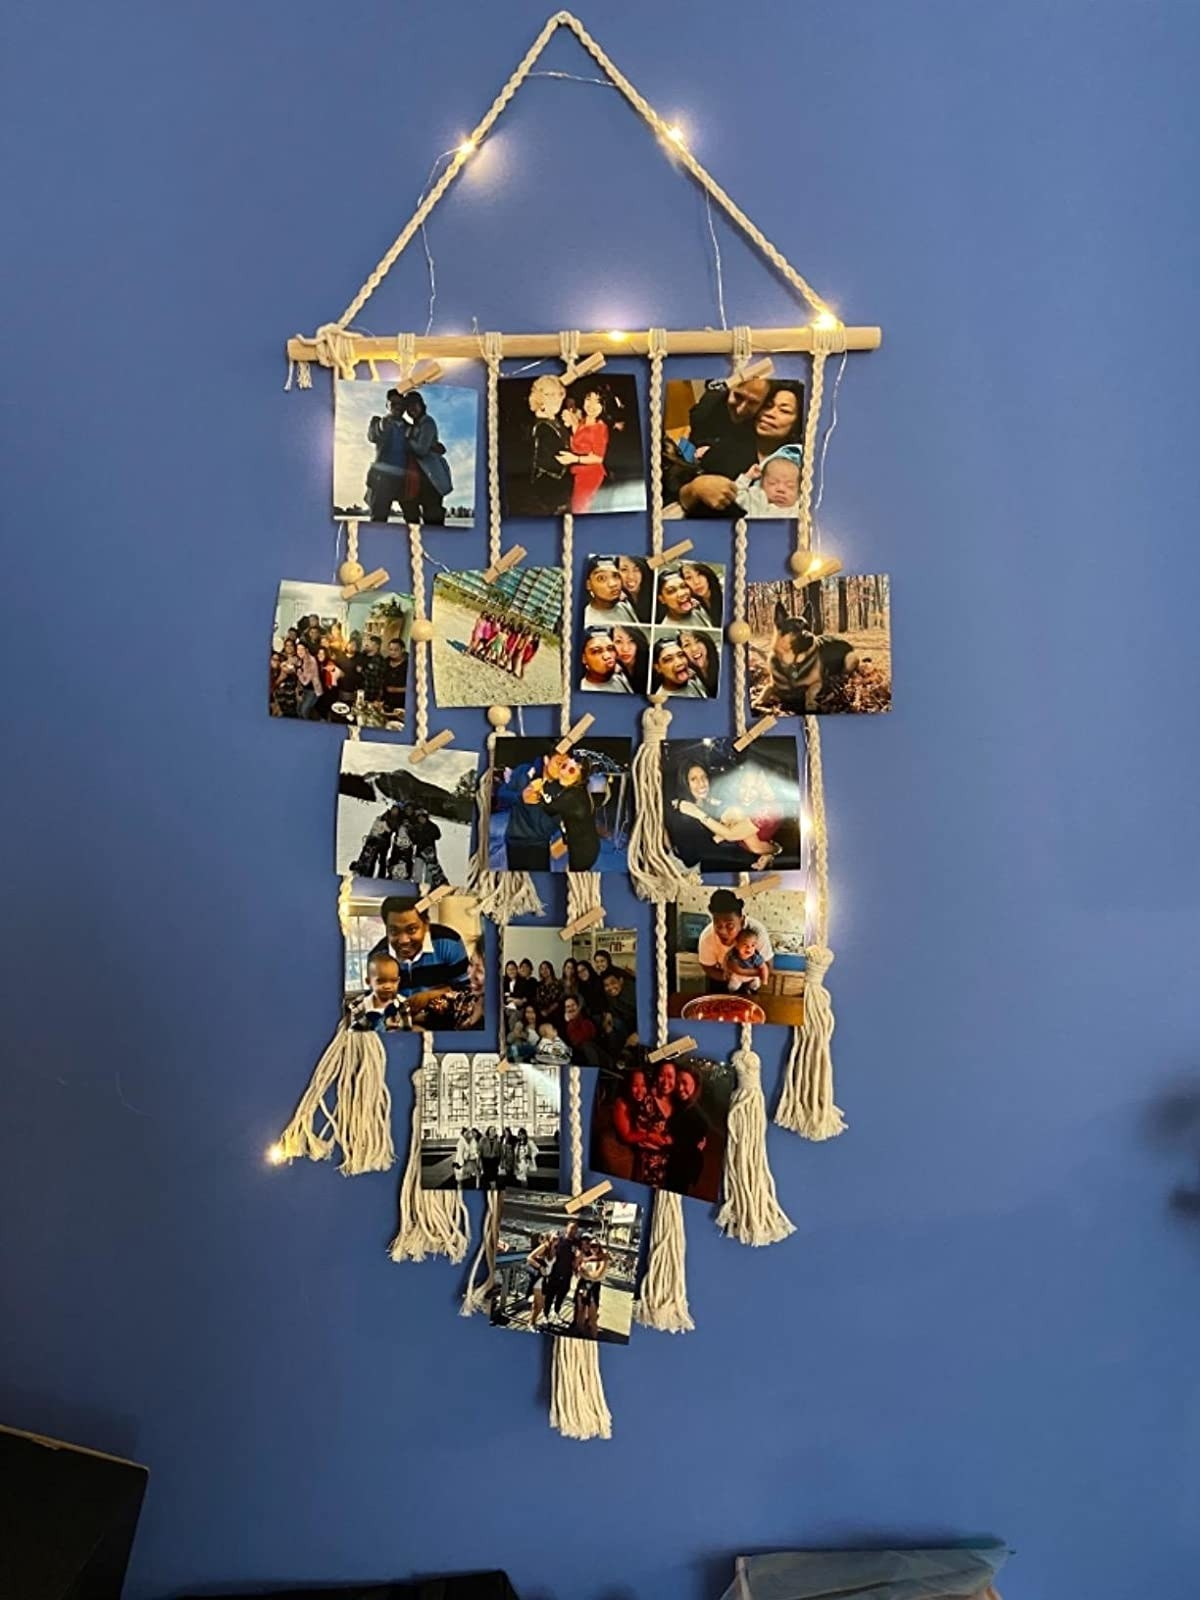 reviewer image of the Hanging macrame Photo Display on their wall with pictures clipped to it